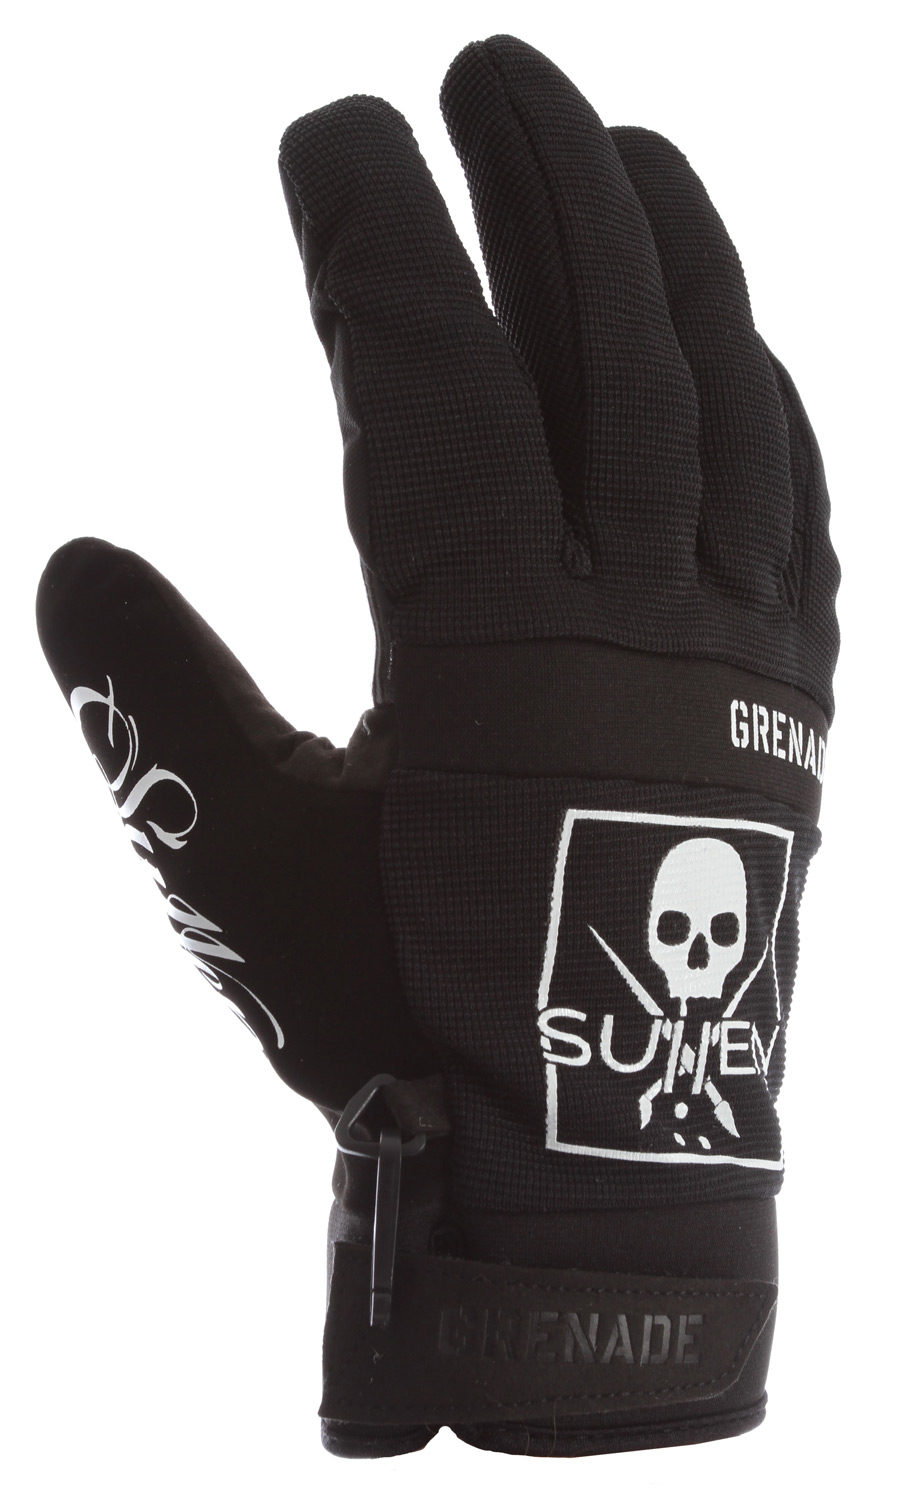 Snowboard Key Features of the Grenade G.A.S. Sullen Gloves : Latter stretch body Performance neoprene knuckle Silicone printed palm graphics Hipora breathable, waterproof insert Screen printed graphics Extended cuff pipe glove Wicking treatment Primaloft - $36.95